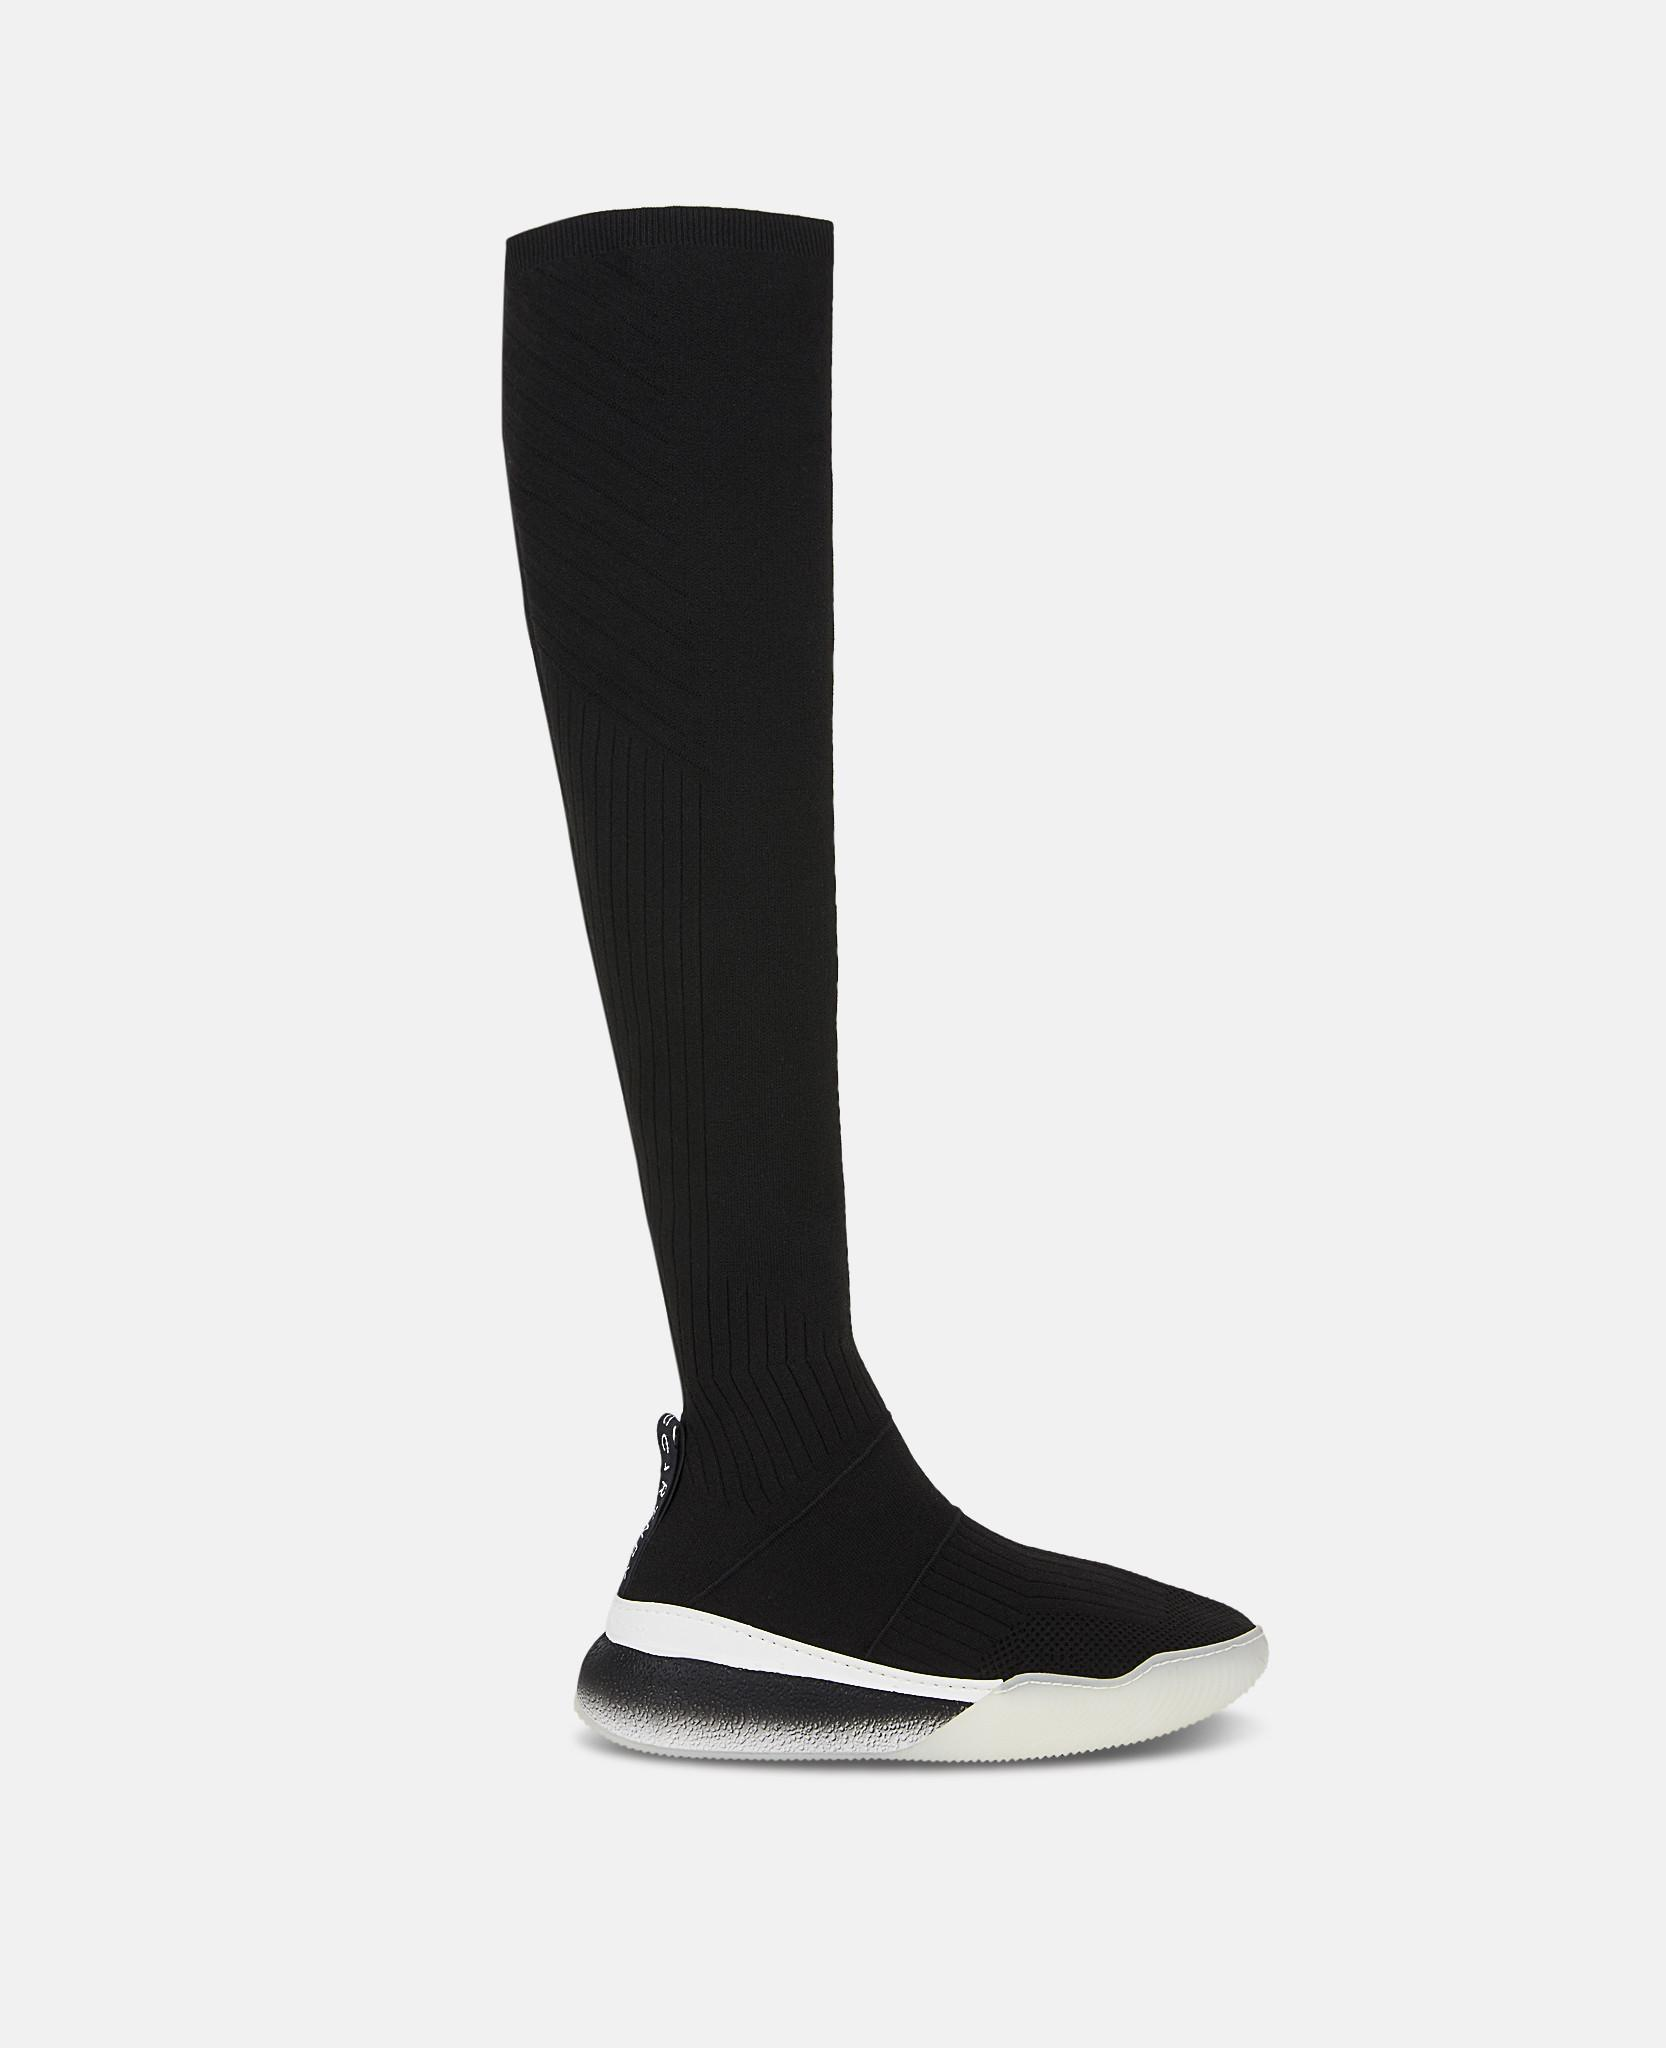 c3e508fe0b7 Stella McCartney. Women s Black High Loop Sneakers.  795 From Orchard Mile